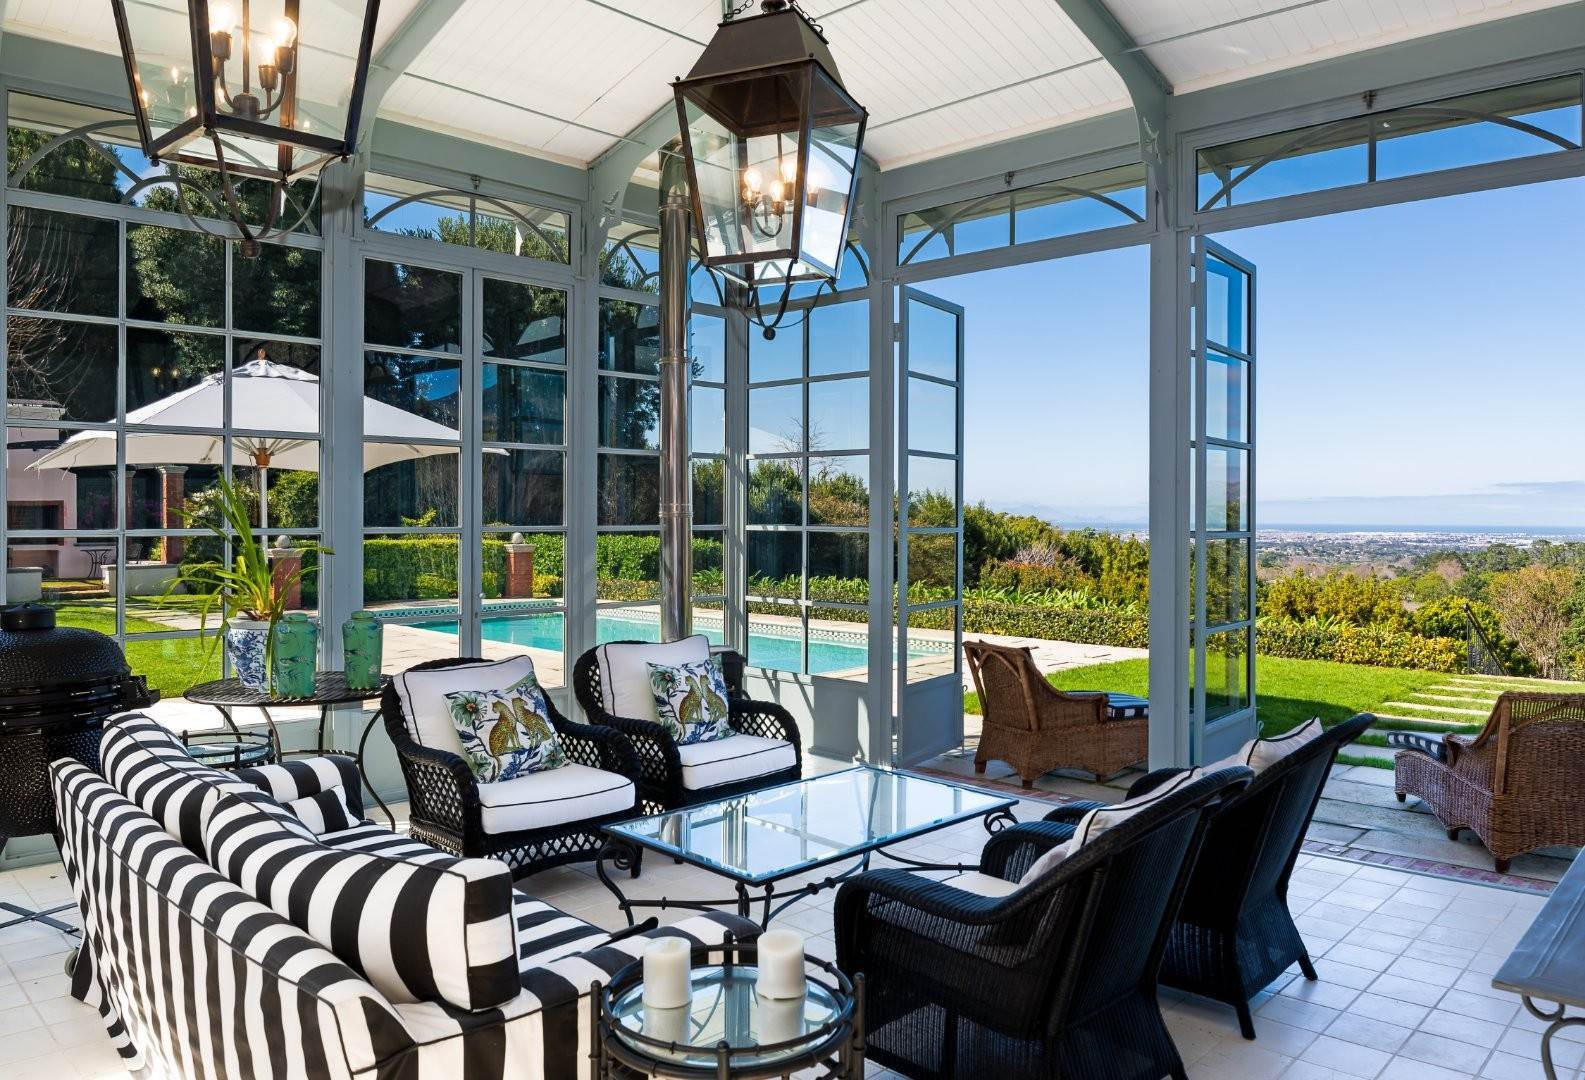 33. Estate for Sale at A MAJESTIC RESIDENCE WITH UNDENIABLE GLOBAL APPEAL Constantia, South Africa